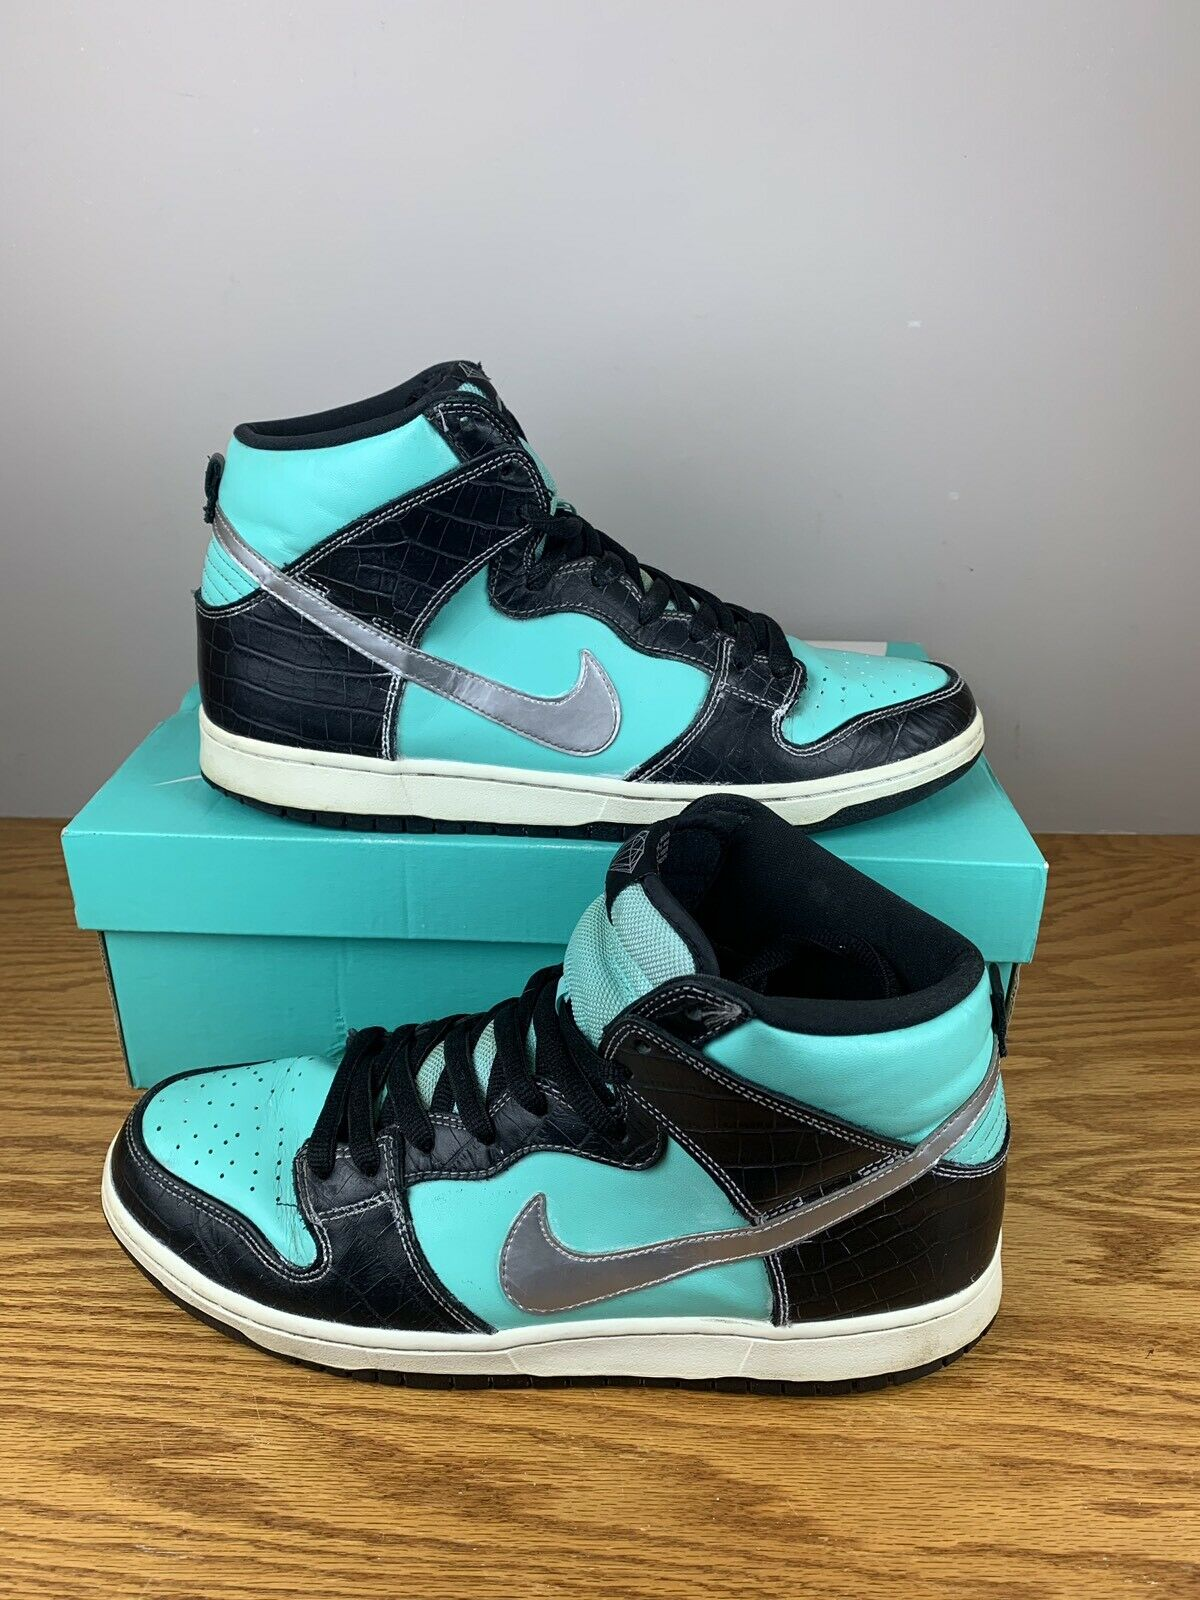 Nike X Diamond Supply Co Dunk High Sz 12